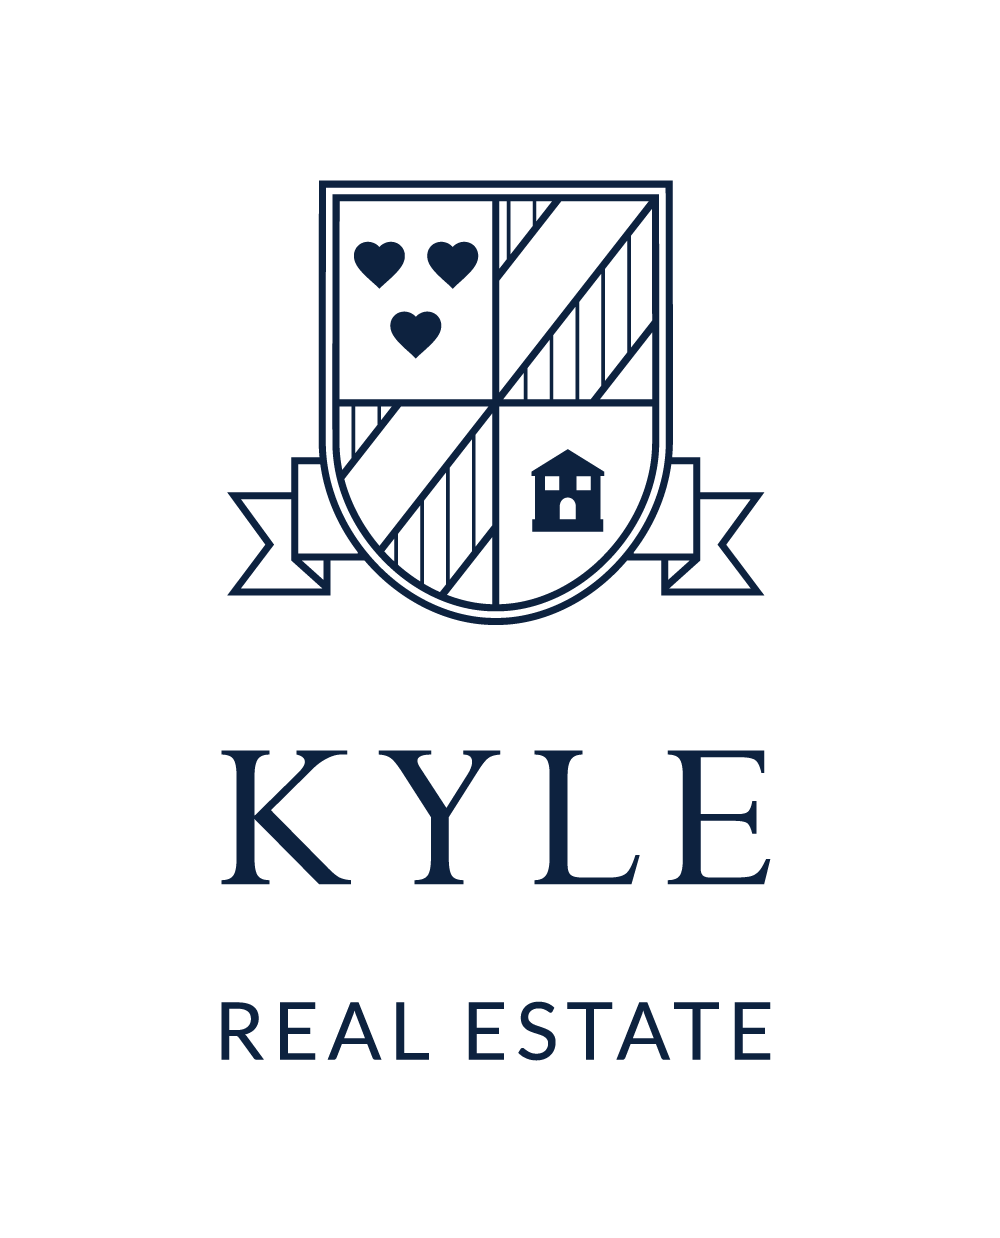 Kyle Real Estate